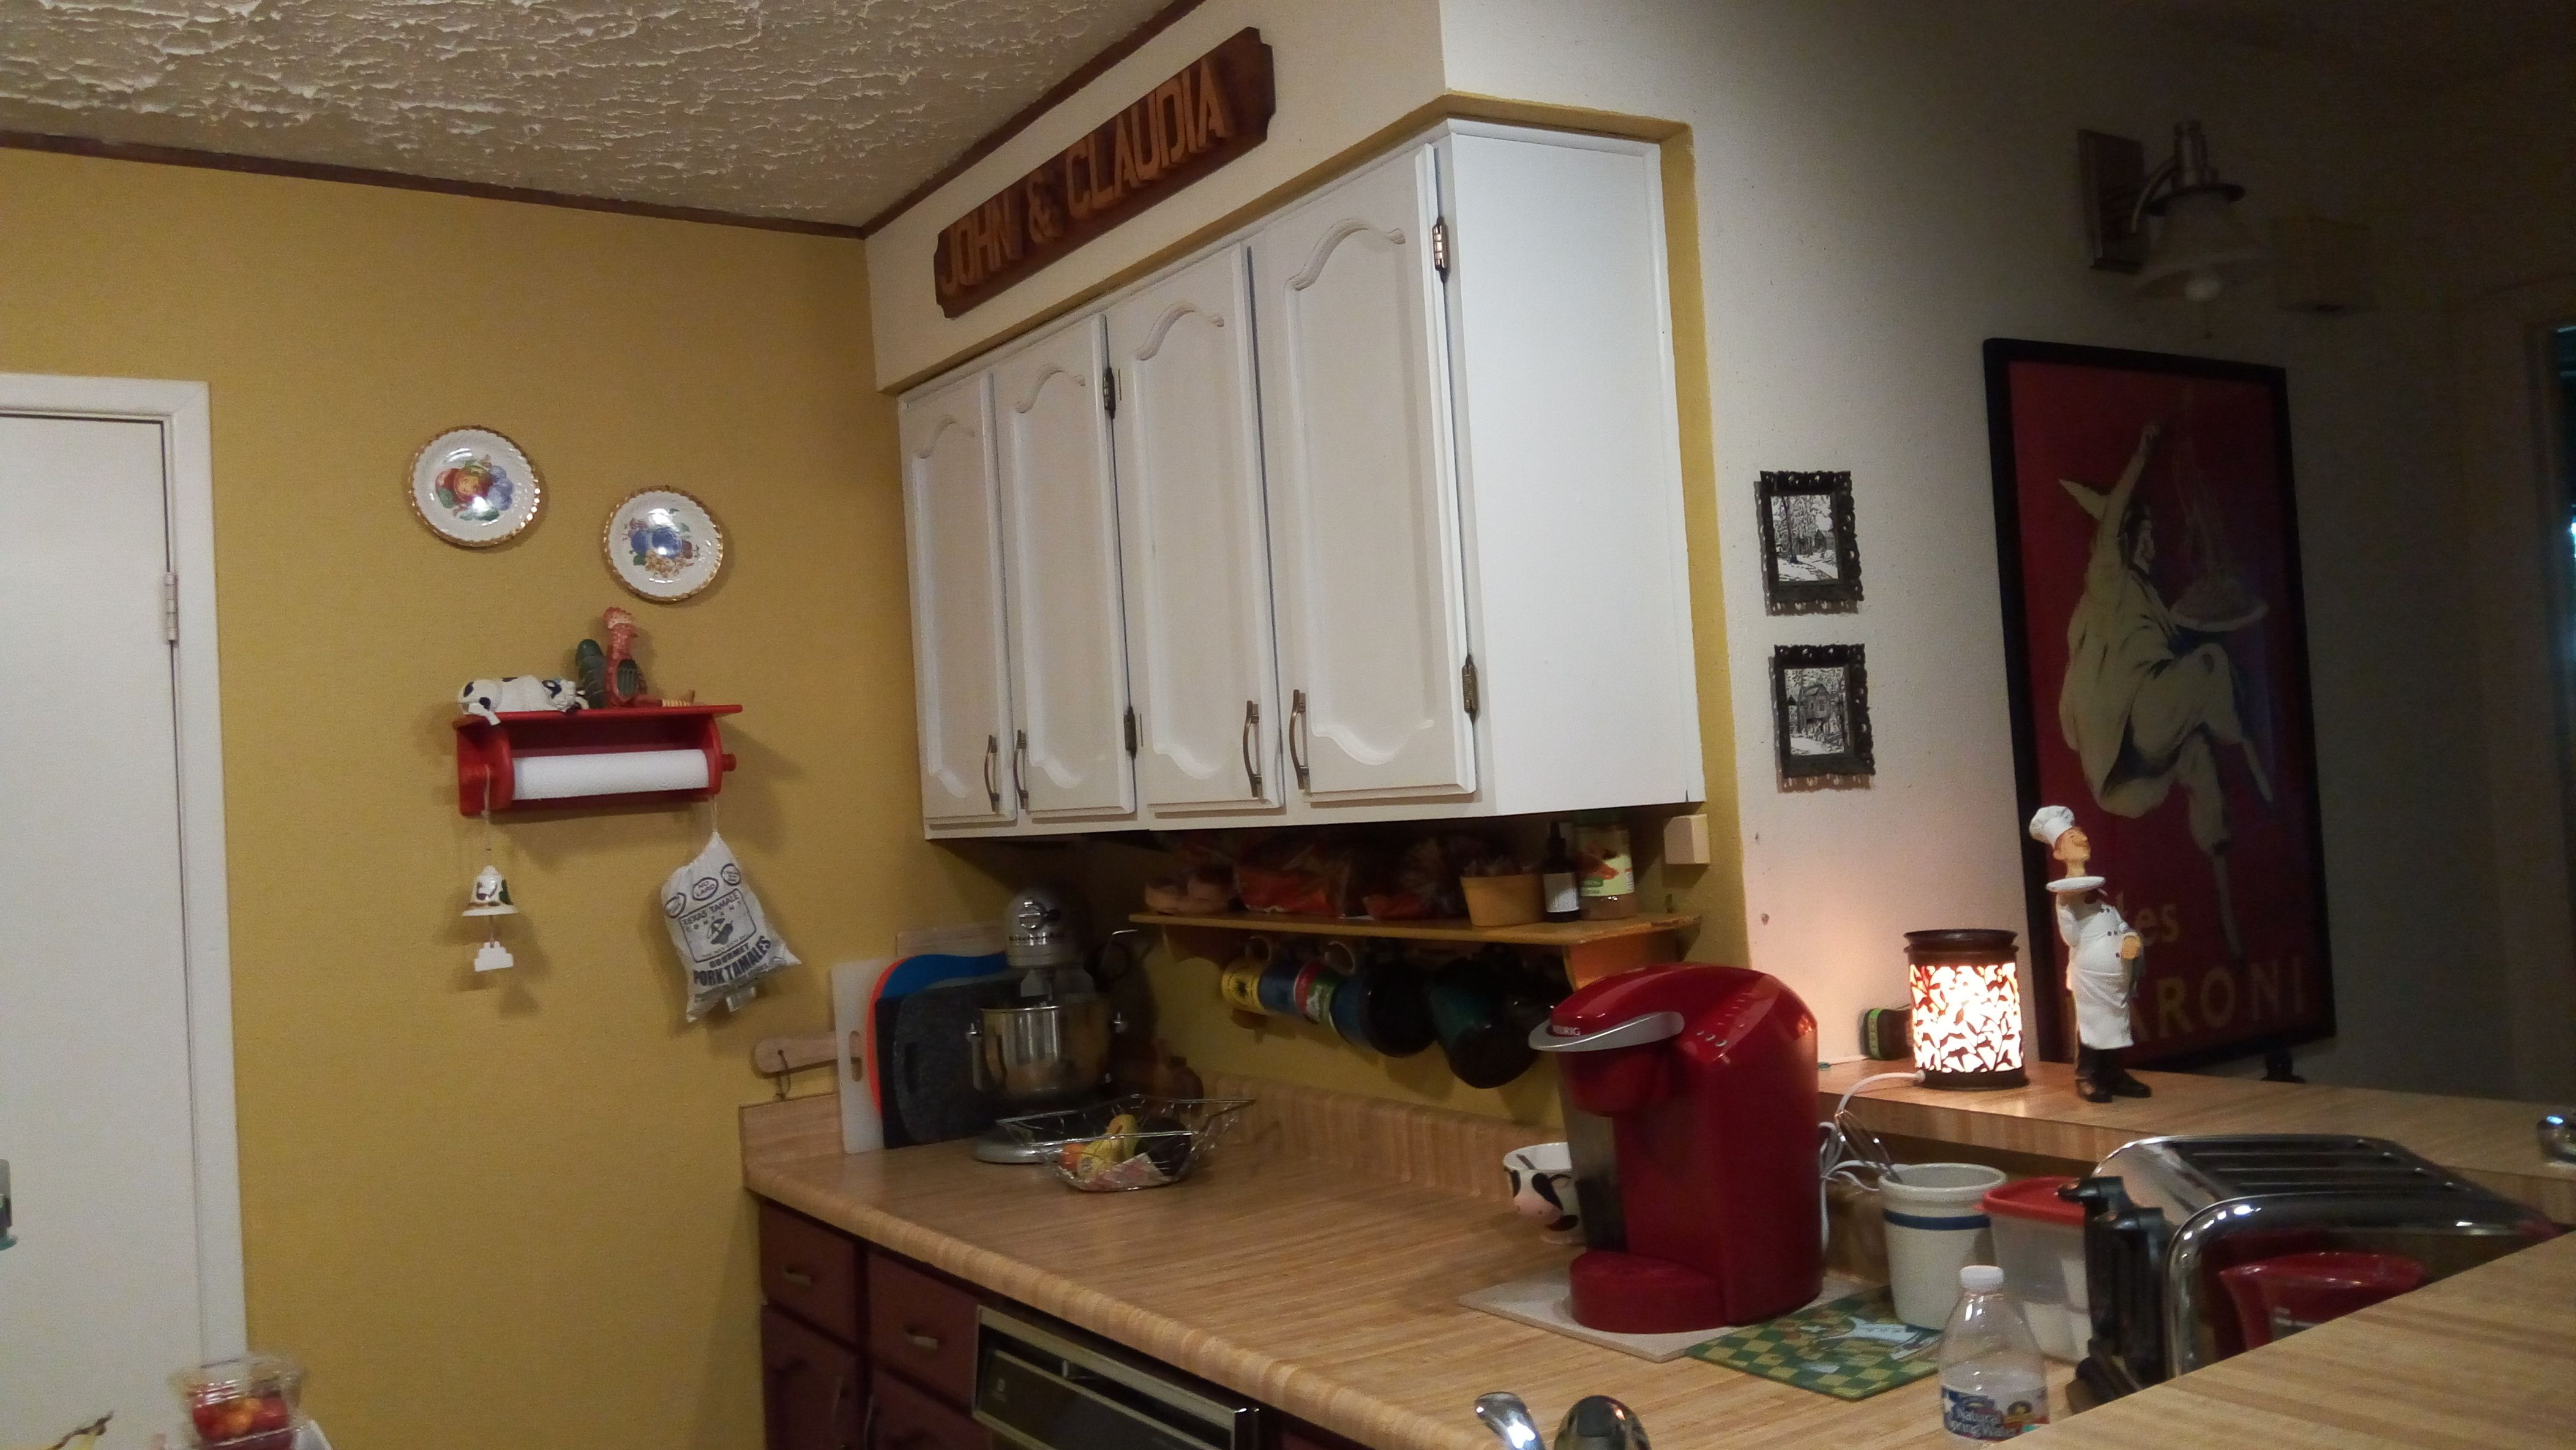 Painting My Kitchen Cabinets Recently I Spent About 3 Weeks Painting My Kitchen Cabinets With